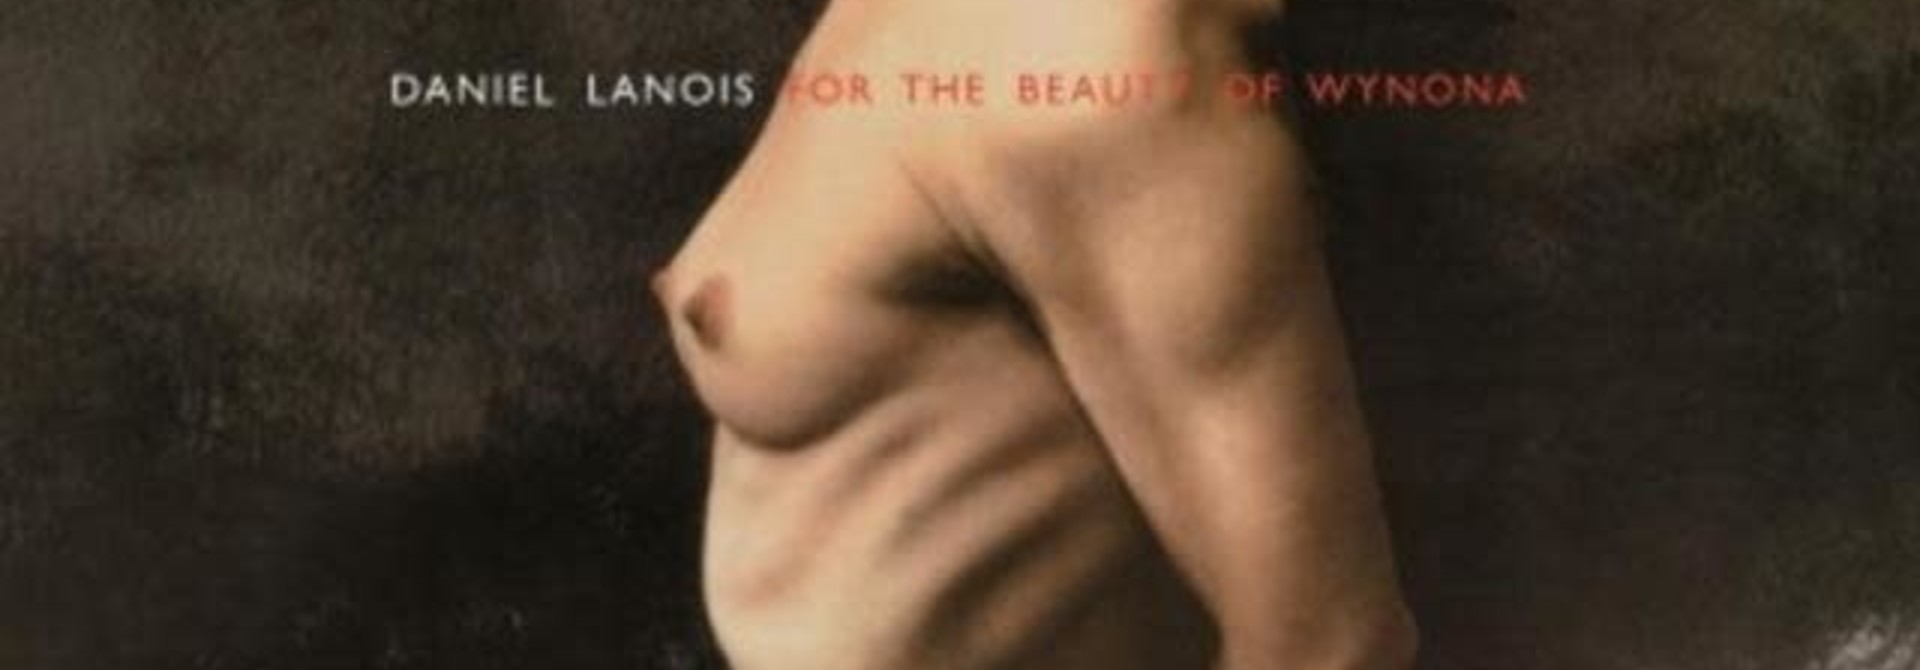 Daniel Lanois • For The Beauty Of Wynona